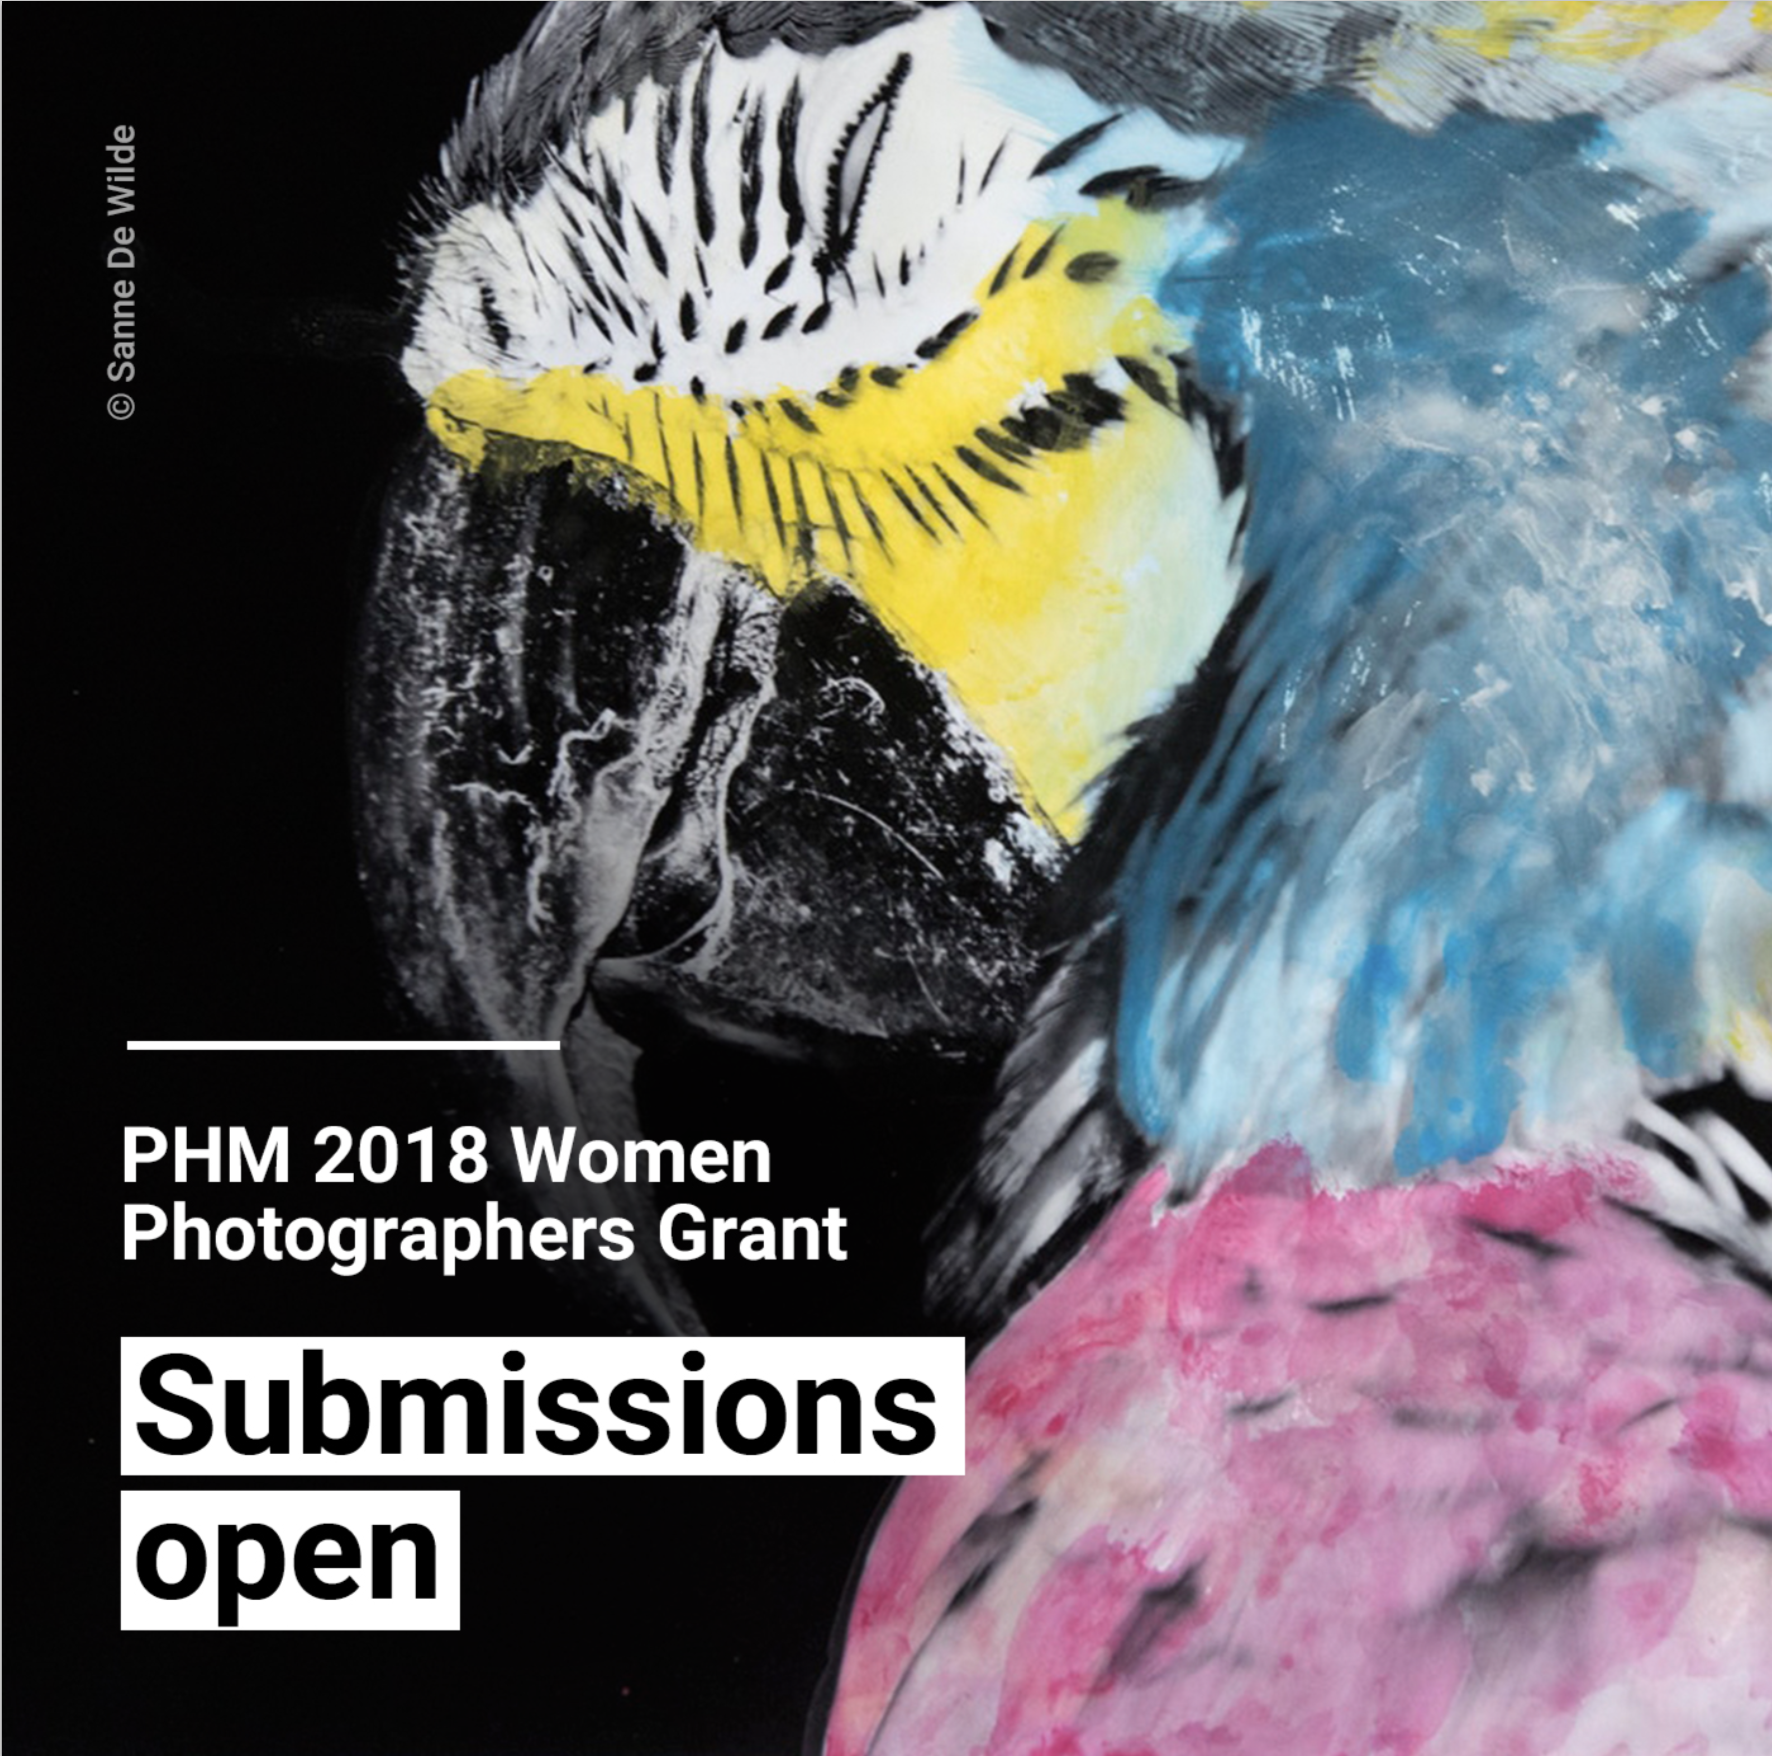 PHM 2018 Women Photographers Grant - logo